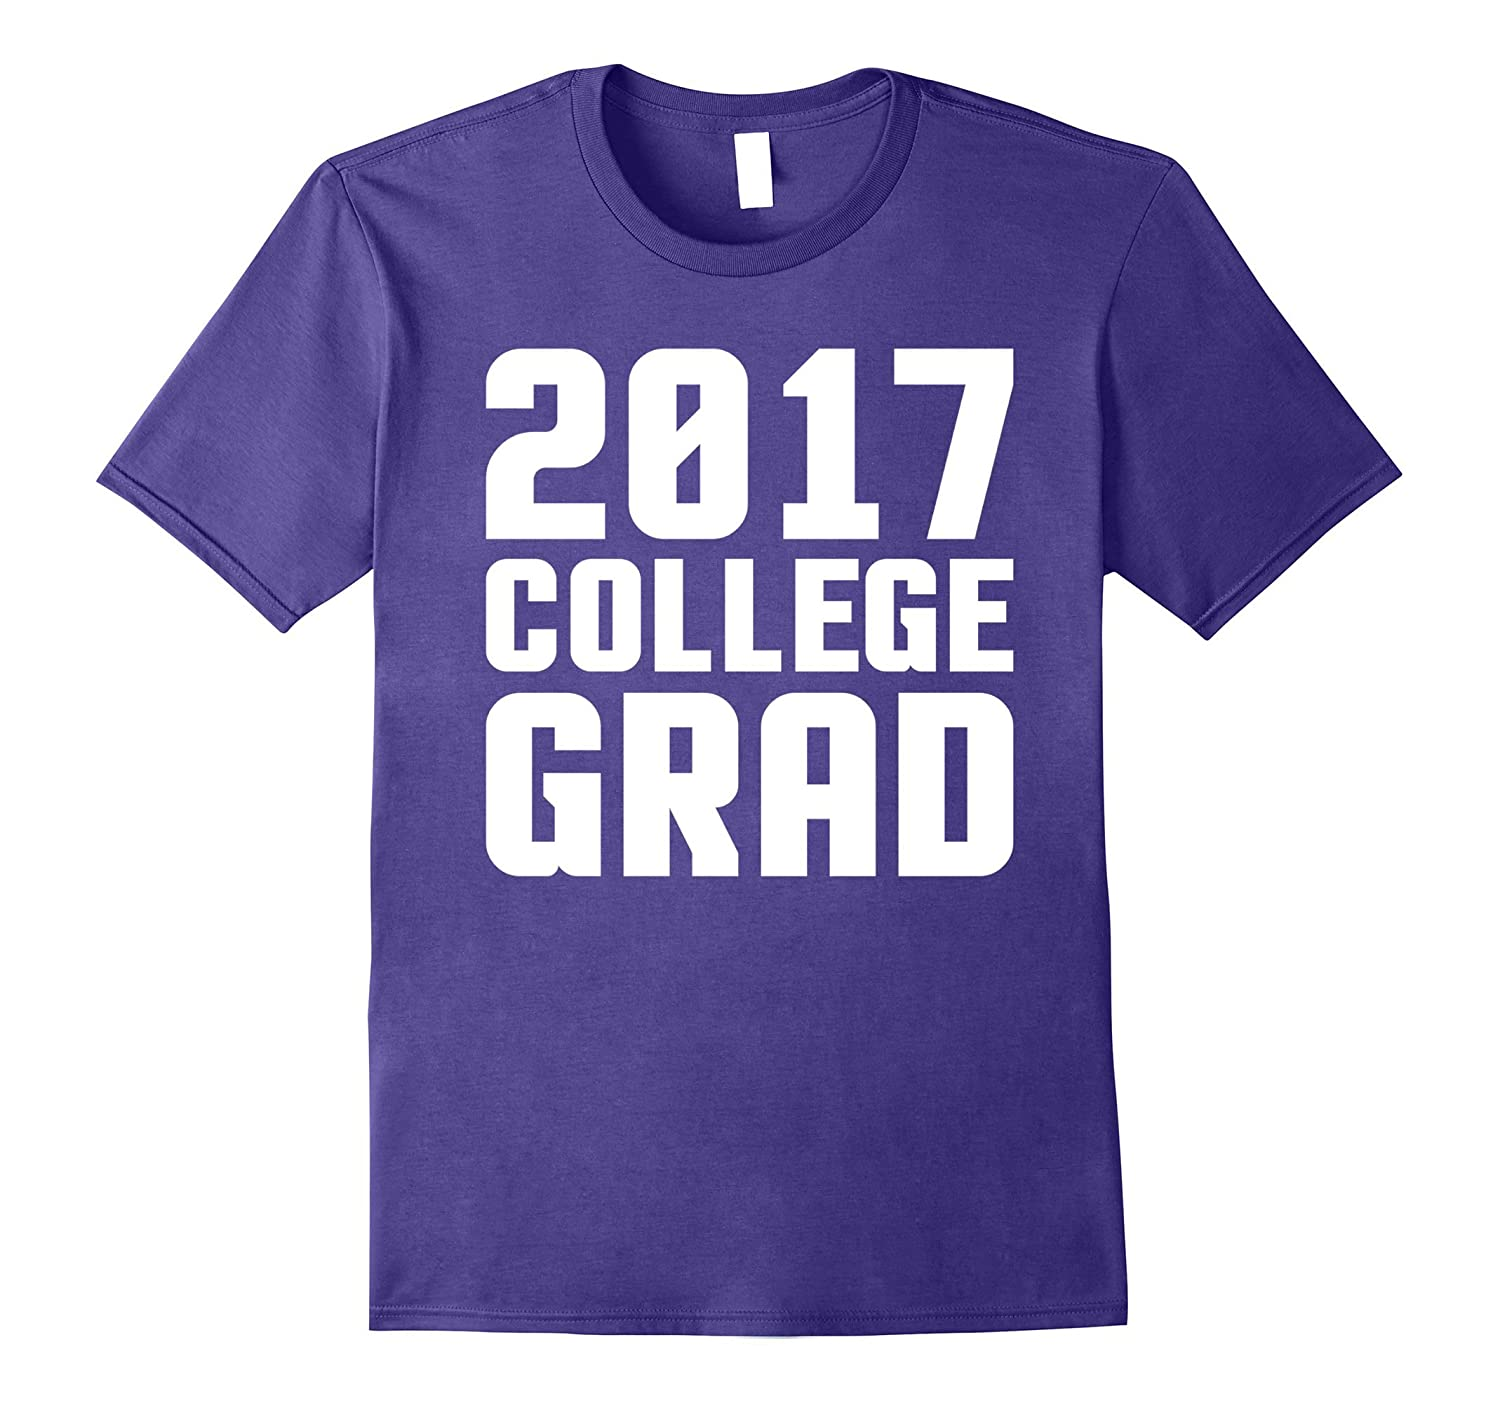 2017 College Grad - University Graduation Graduate T-Shirt-TH